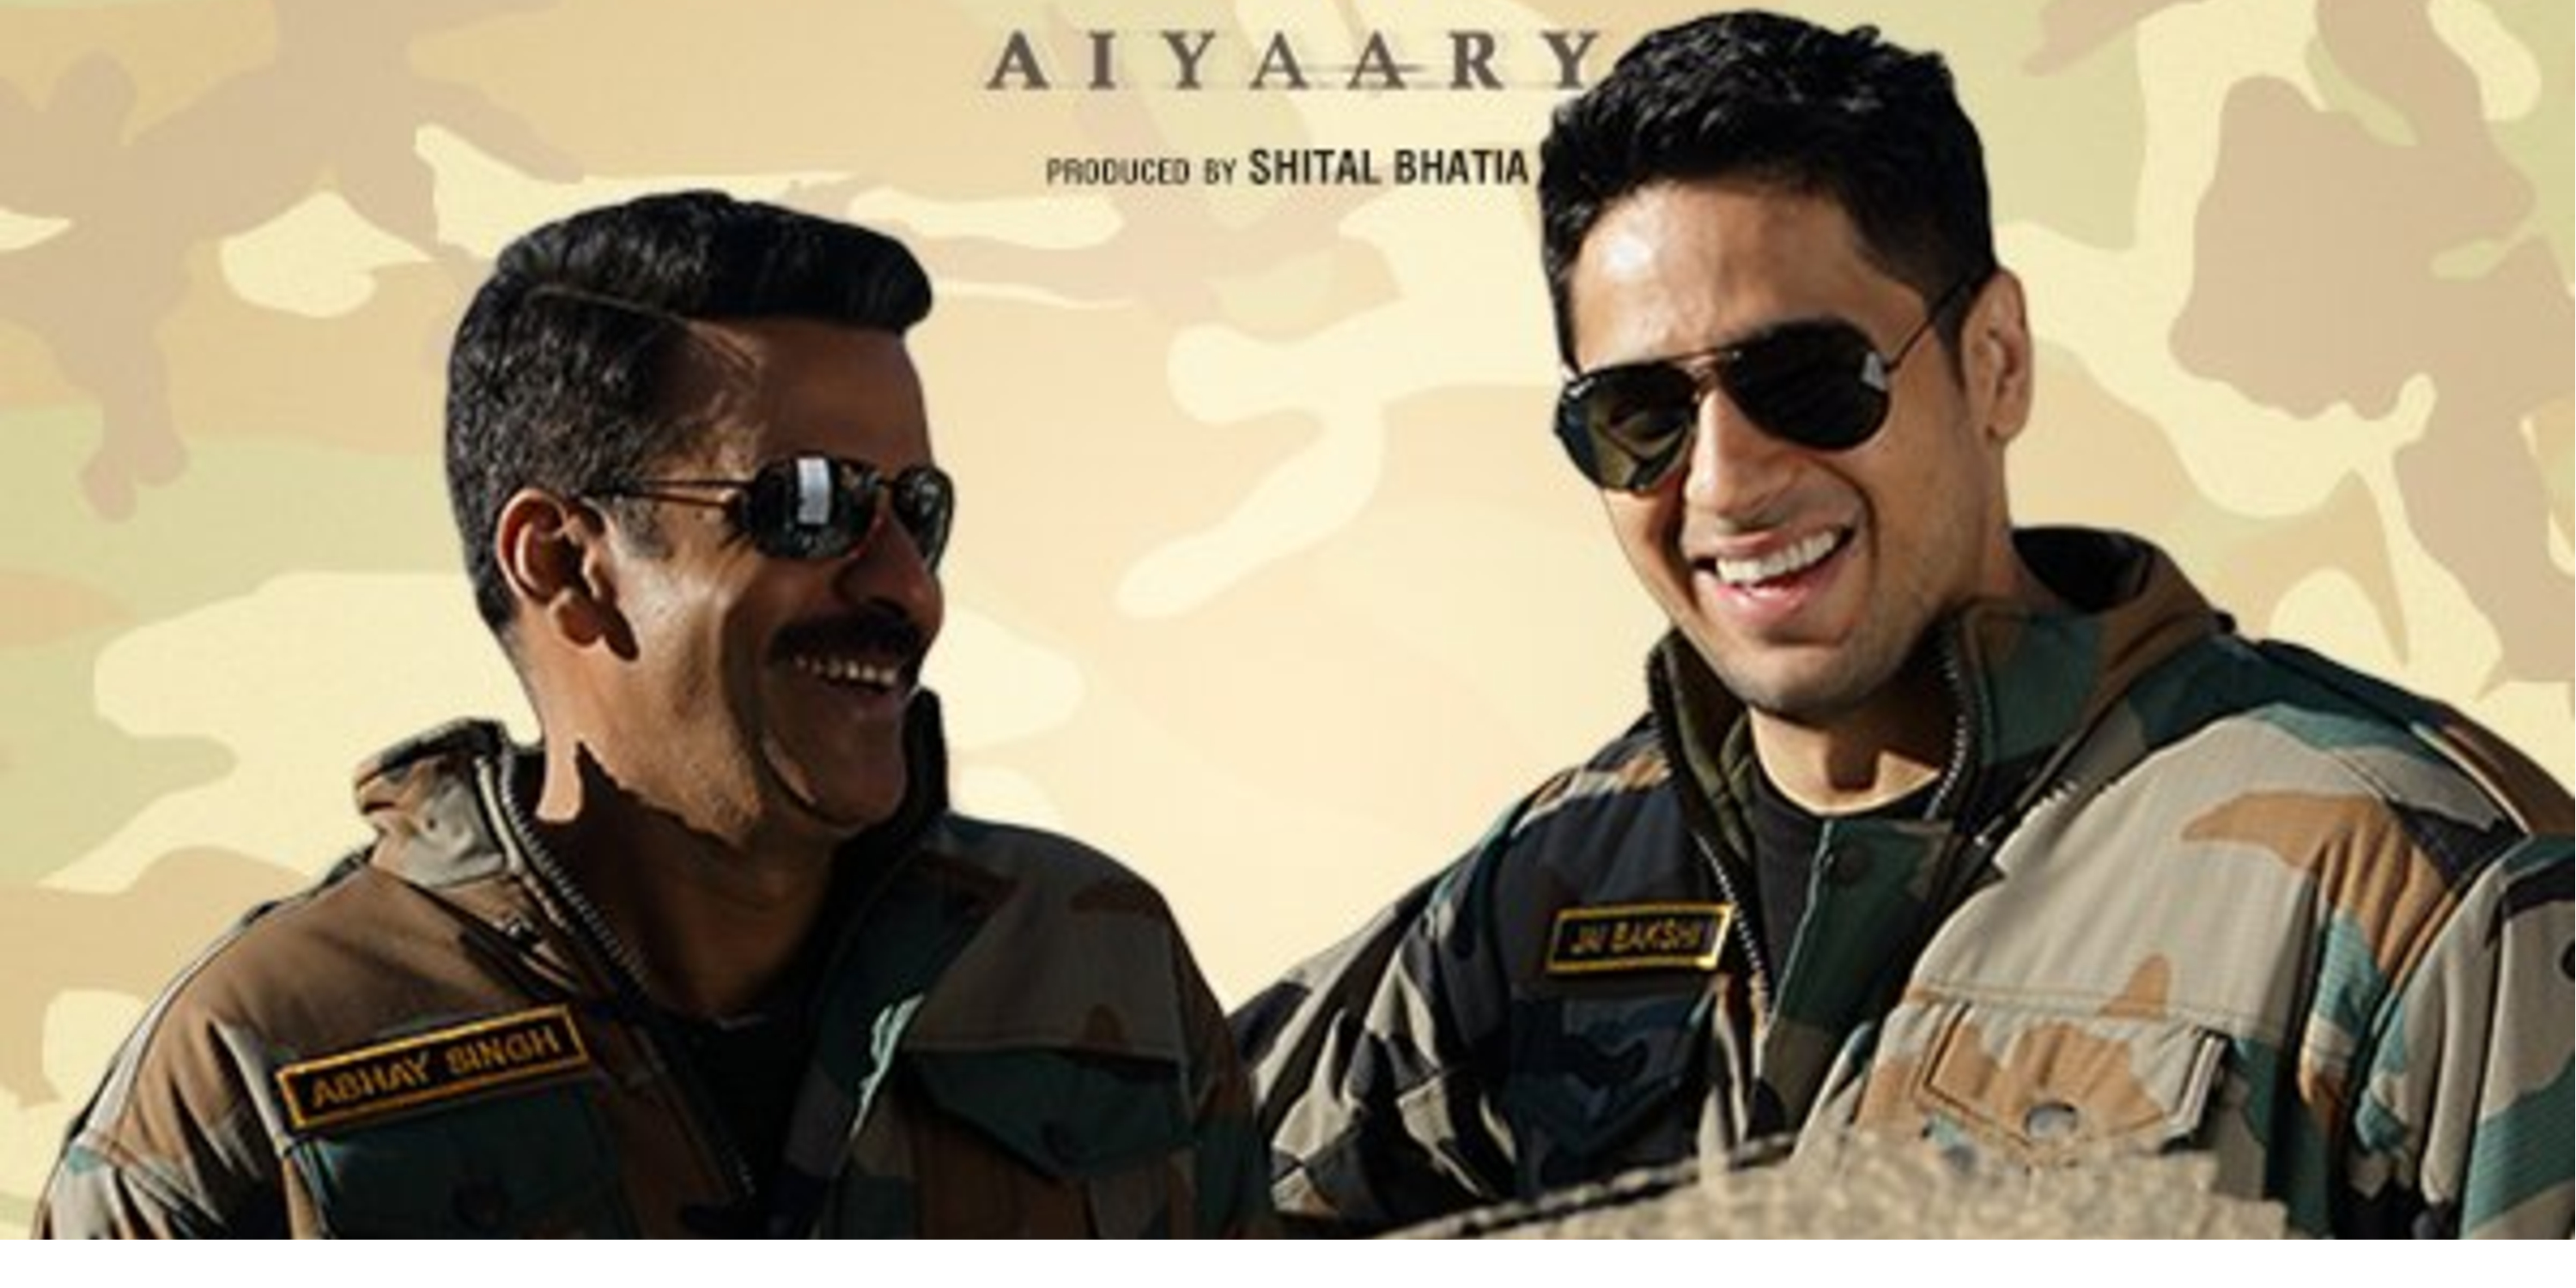 Aiyaary (2018) First Look Poster